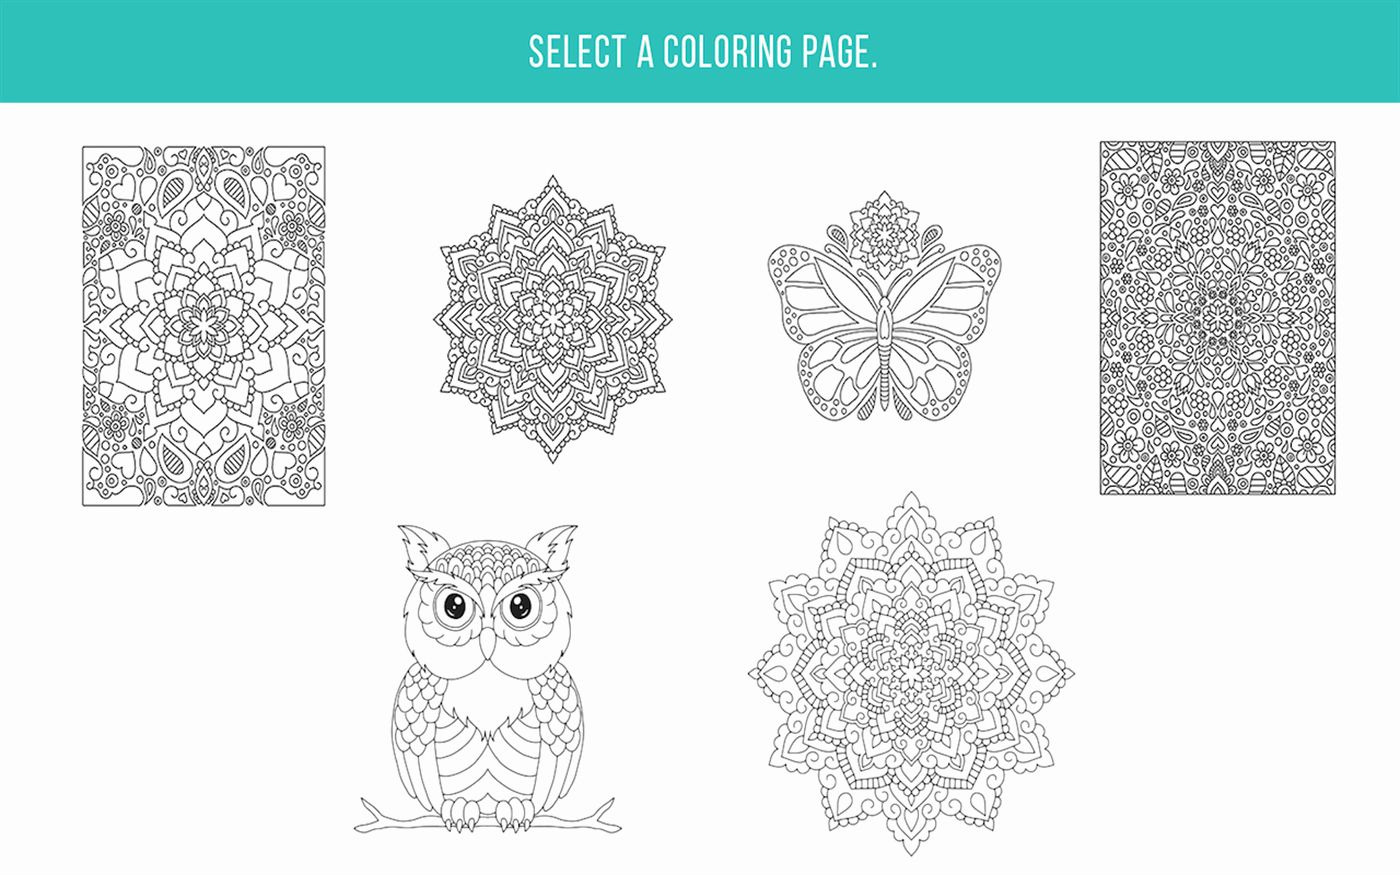 Painting Coloring Books New 10 Best Painting Apps For Windows 10